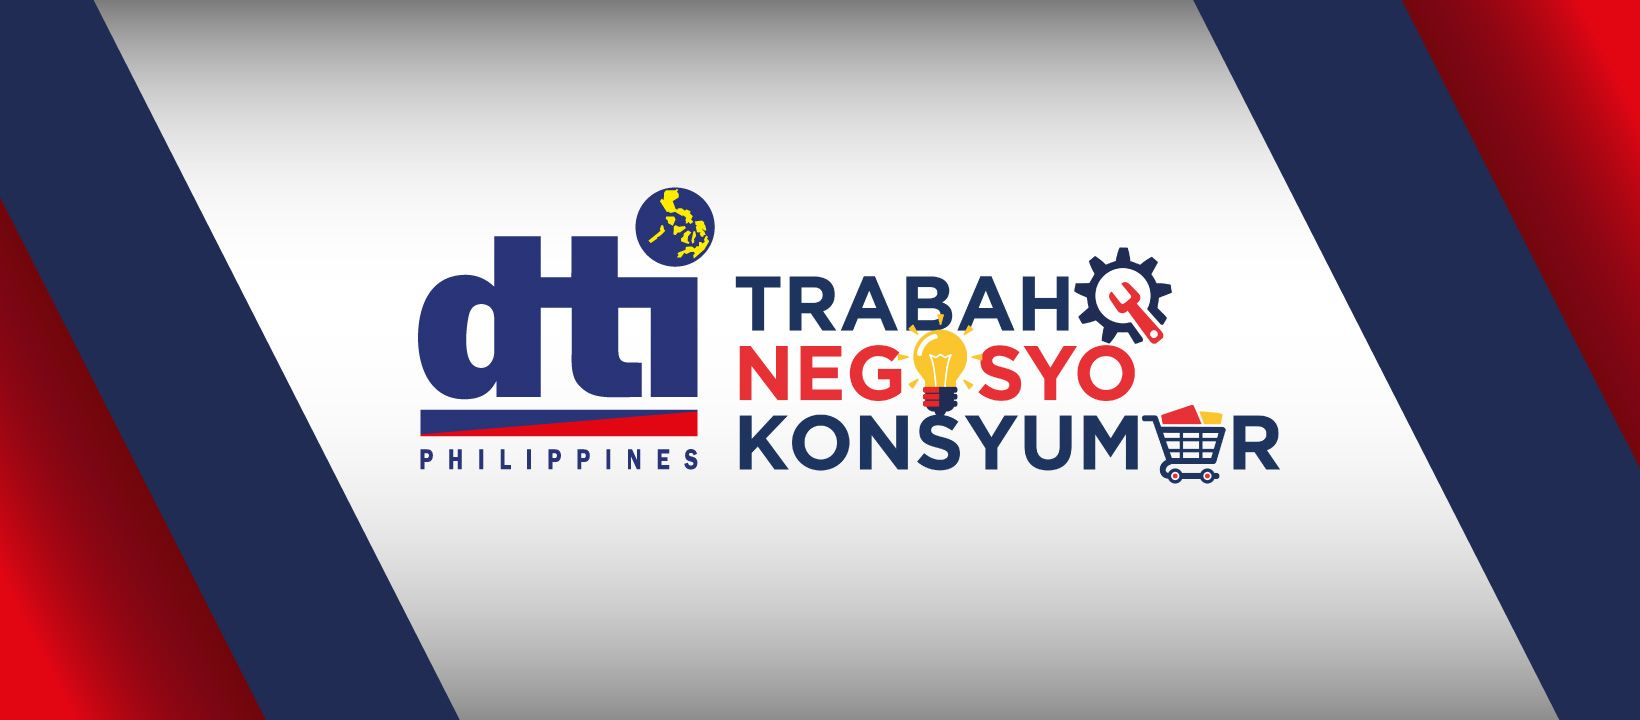 Department of Trade and Industry (DTI) focuses on improving the compliance of business establishments